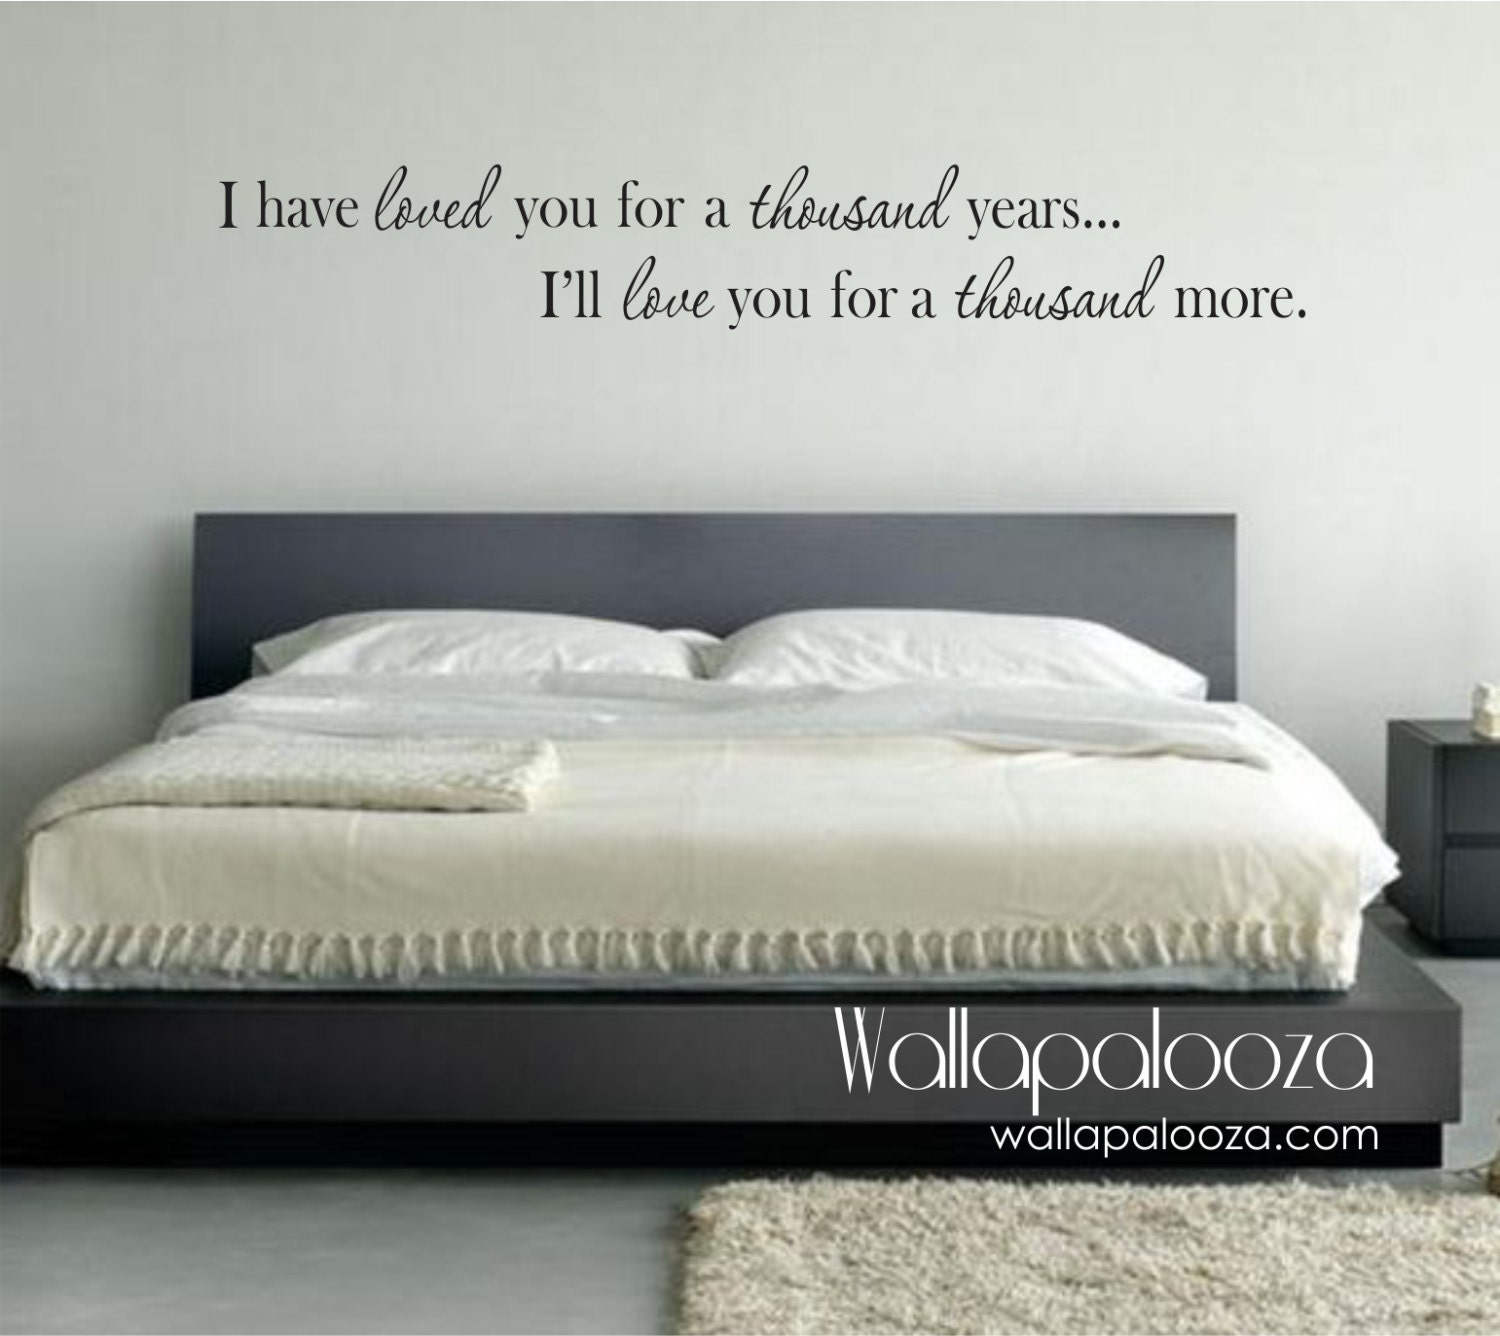 Bedroom Wall Decal I have loved you a thousand years wall